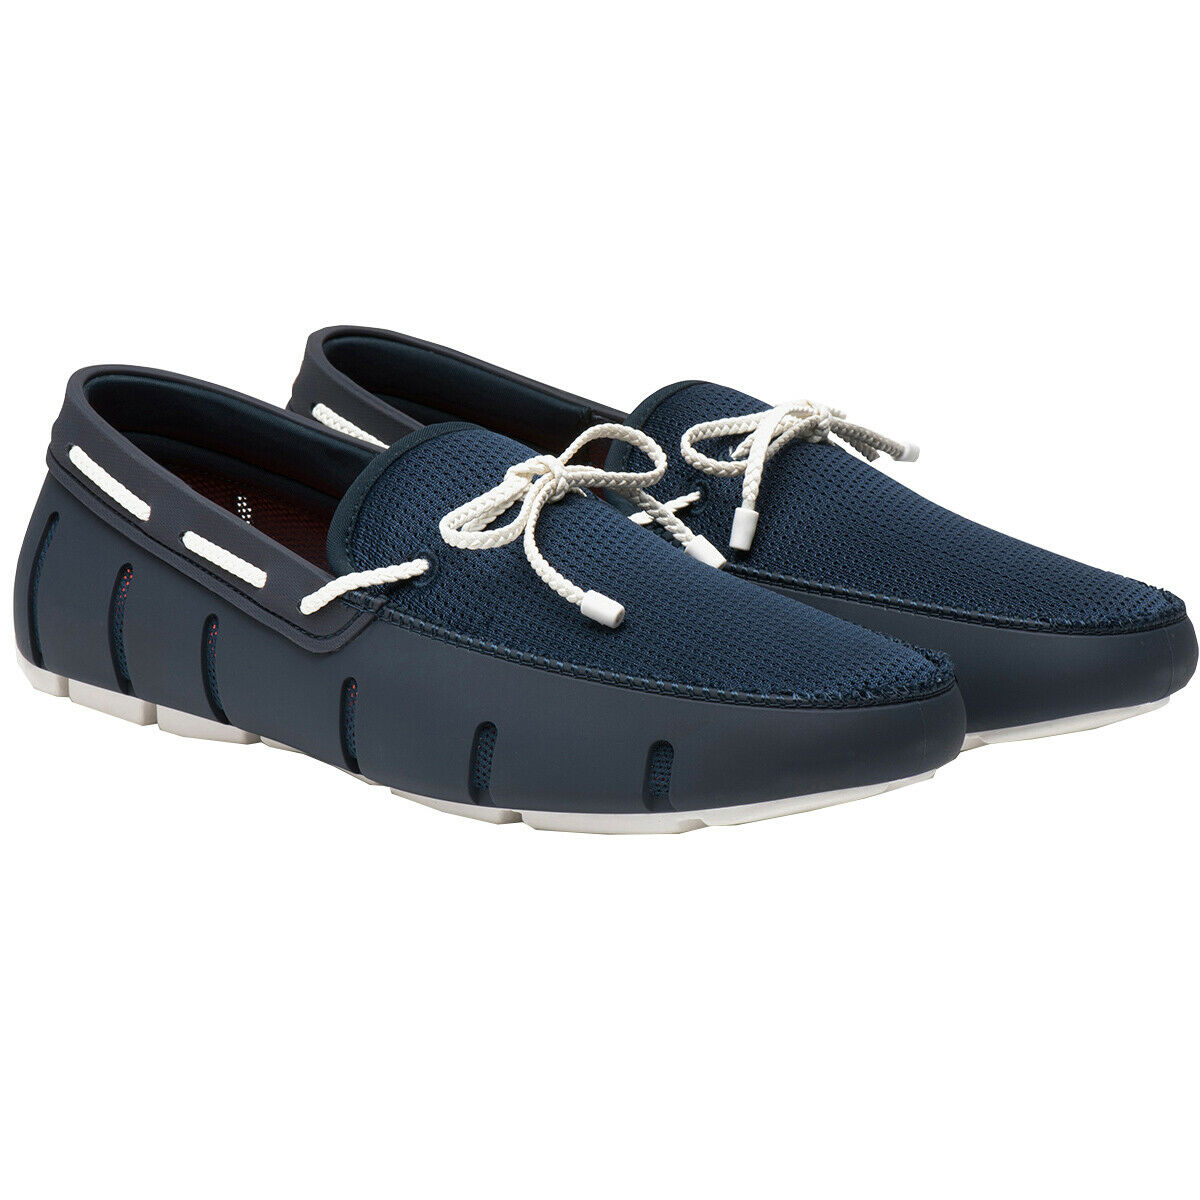 Swims NEW Men's Braided Lace Loafers - Navy   White BNWT